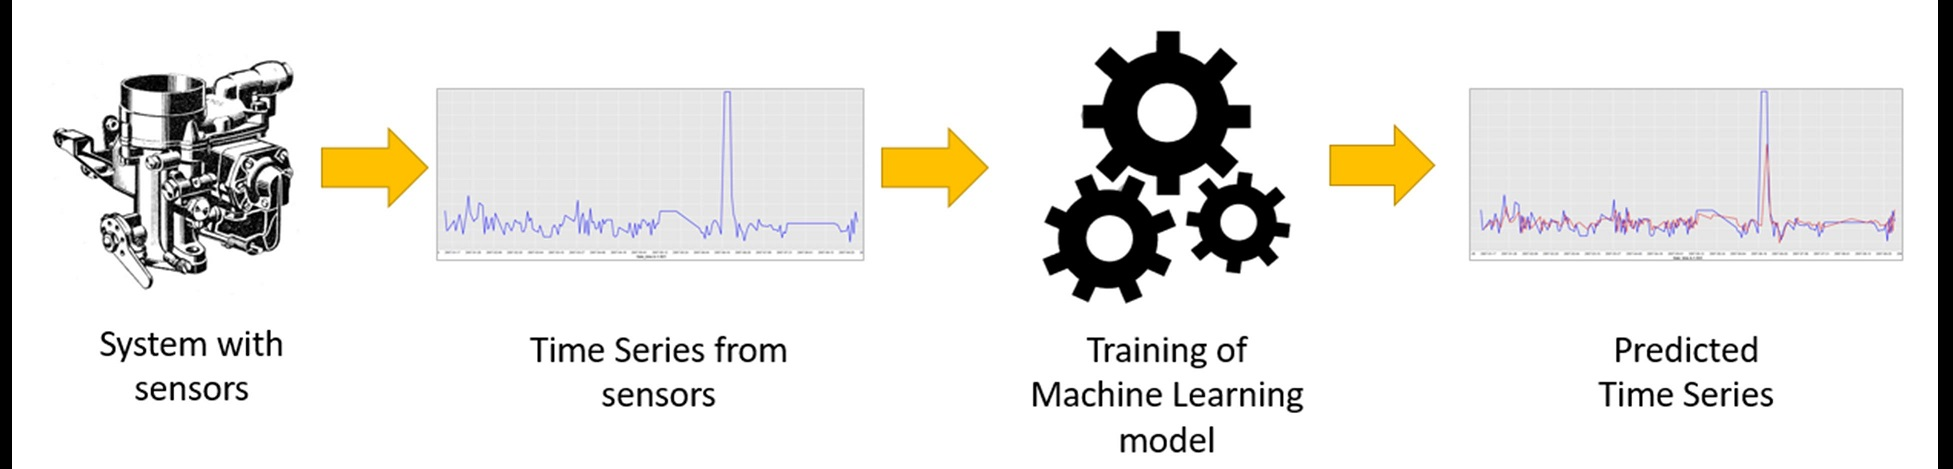 Anomaly detection problems do not offer a classic training set with labeled examples for classes: a signal from a normally functioning system and a signal from a system with an analogy. In this case, we can only train a machine learning model on a training set with 'normal' examples and use a distance measure between the original signal and the predicted signal to trigger an anomaly alarm.